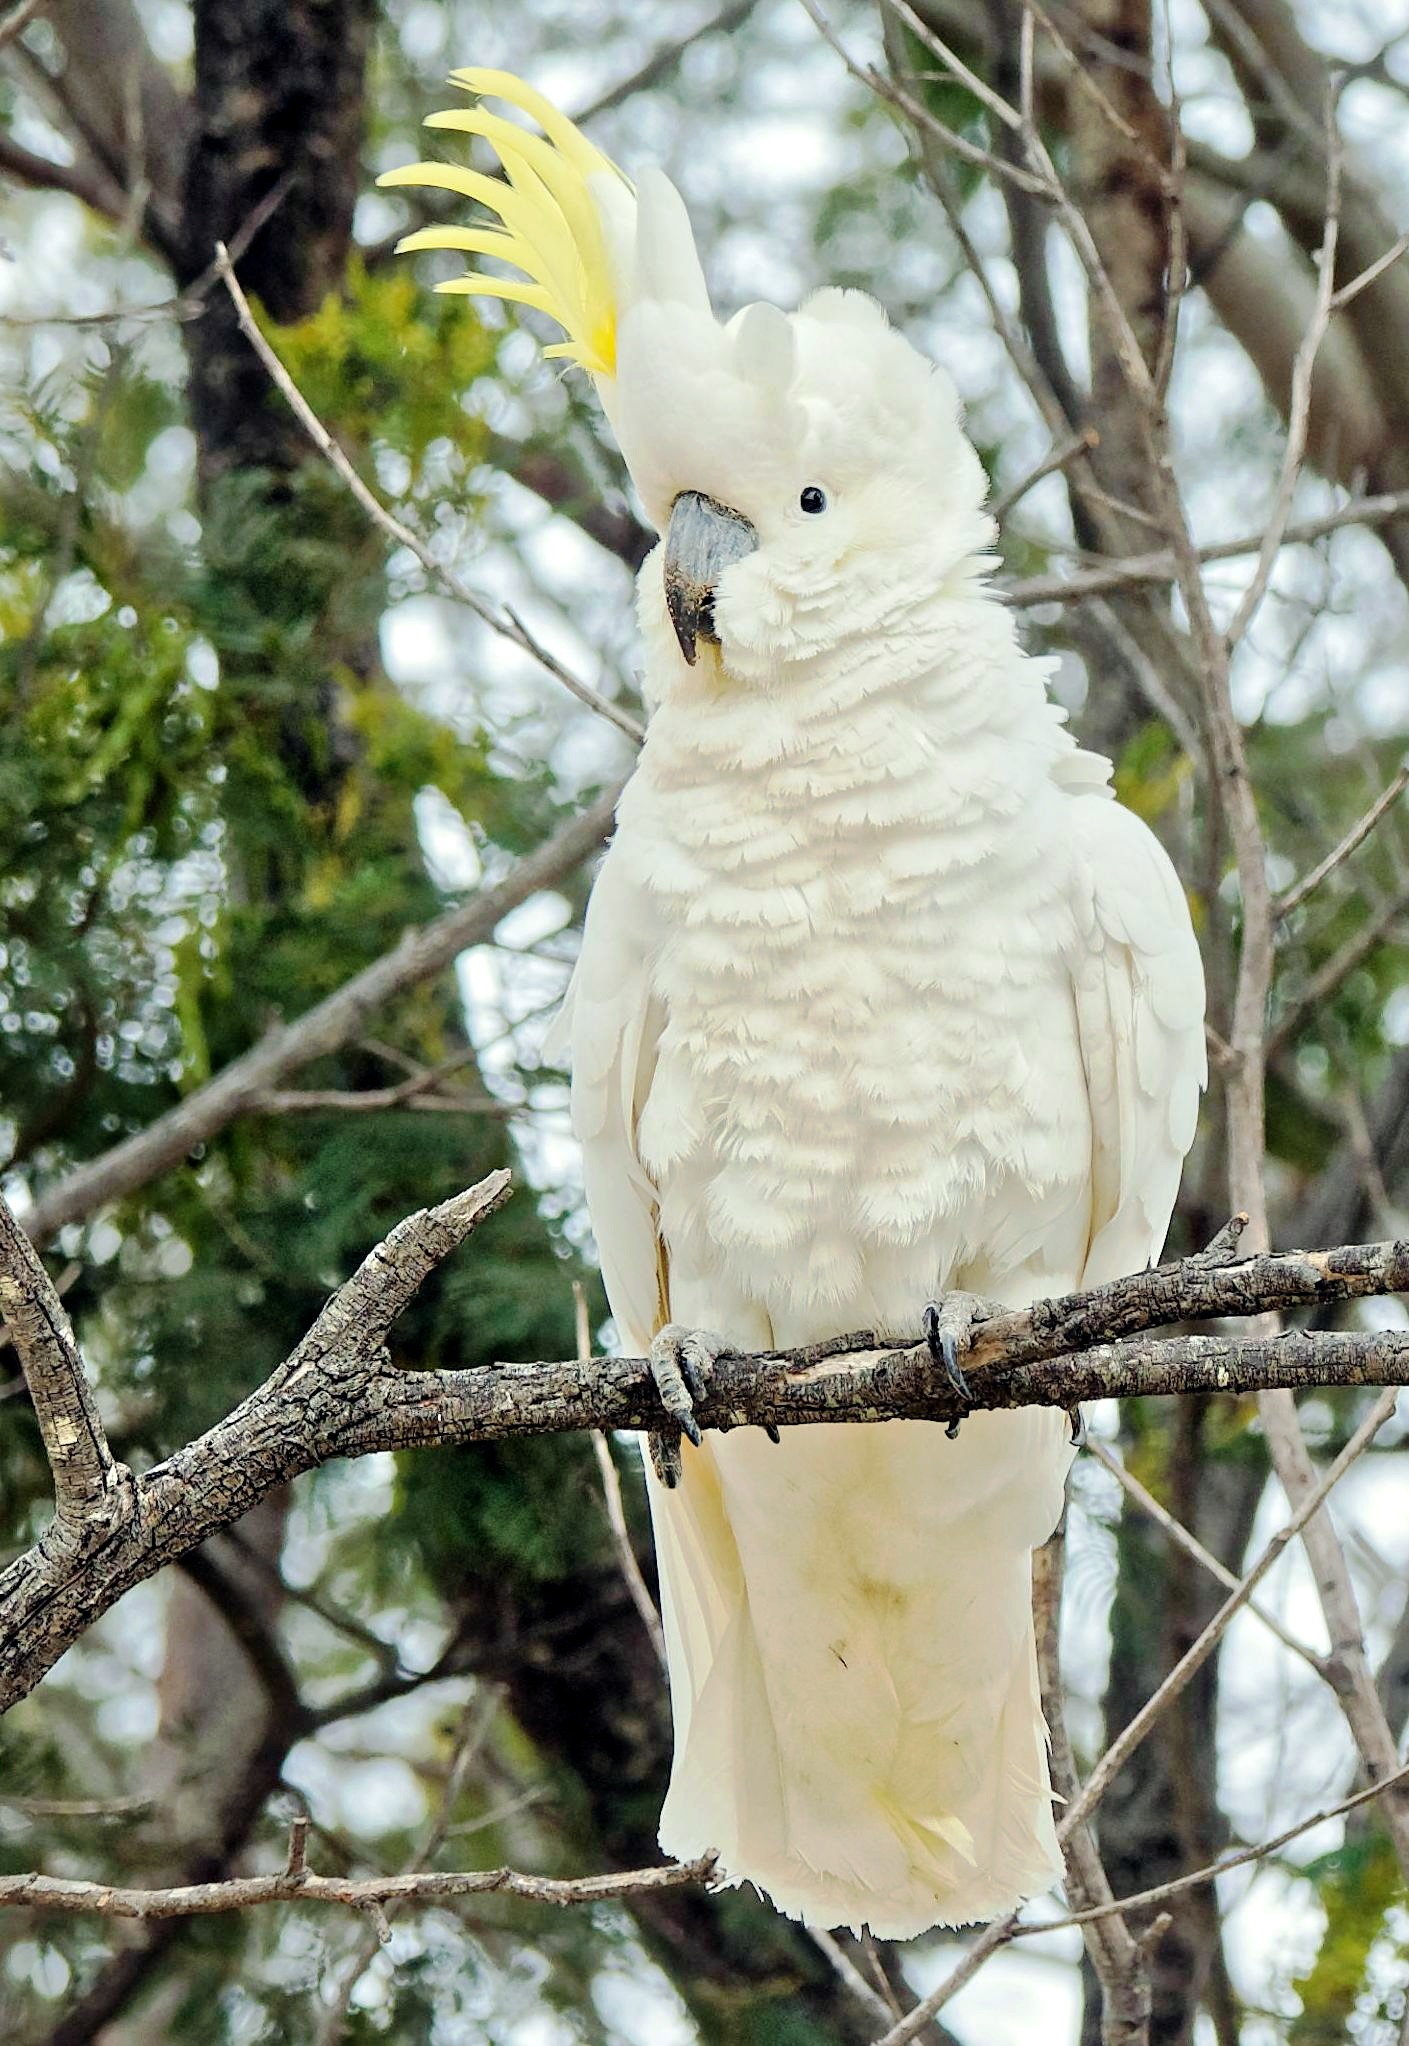 Cockatoo-2-detail.jpeg